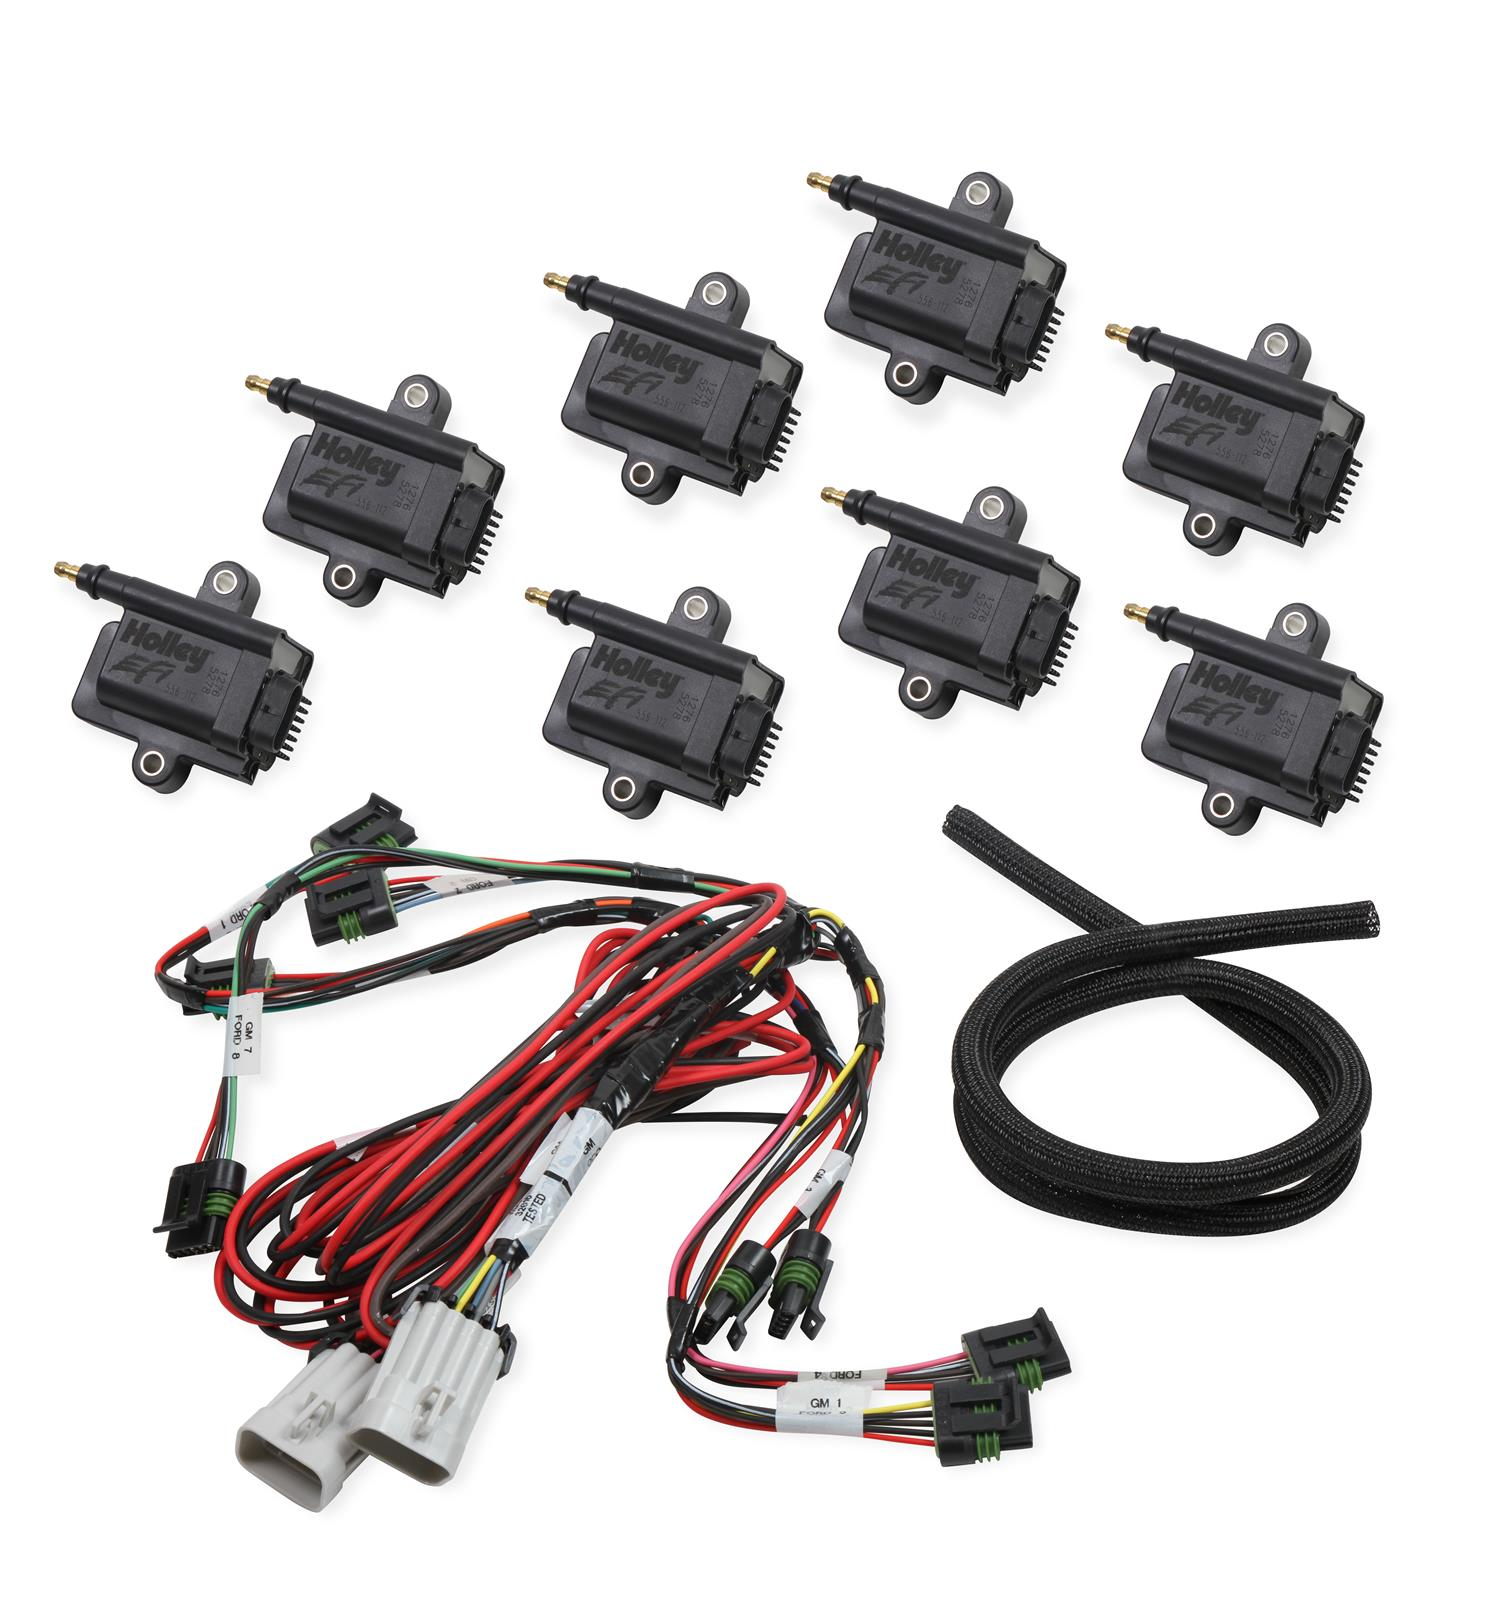 holley coil-near-plug smart ignition coils 556-128 - free shipping on  orders over $99 at summit racing